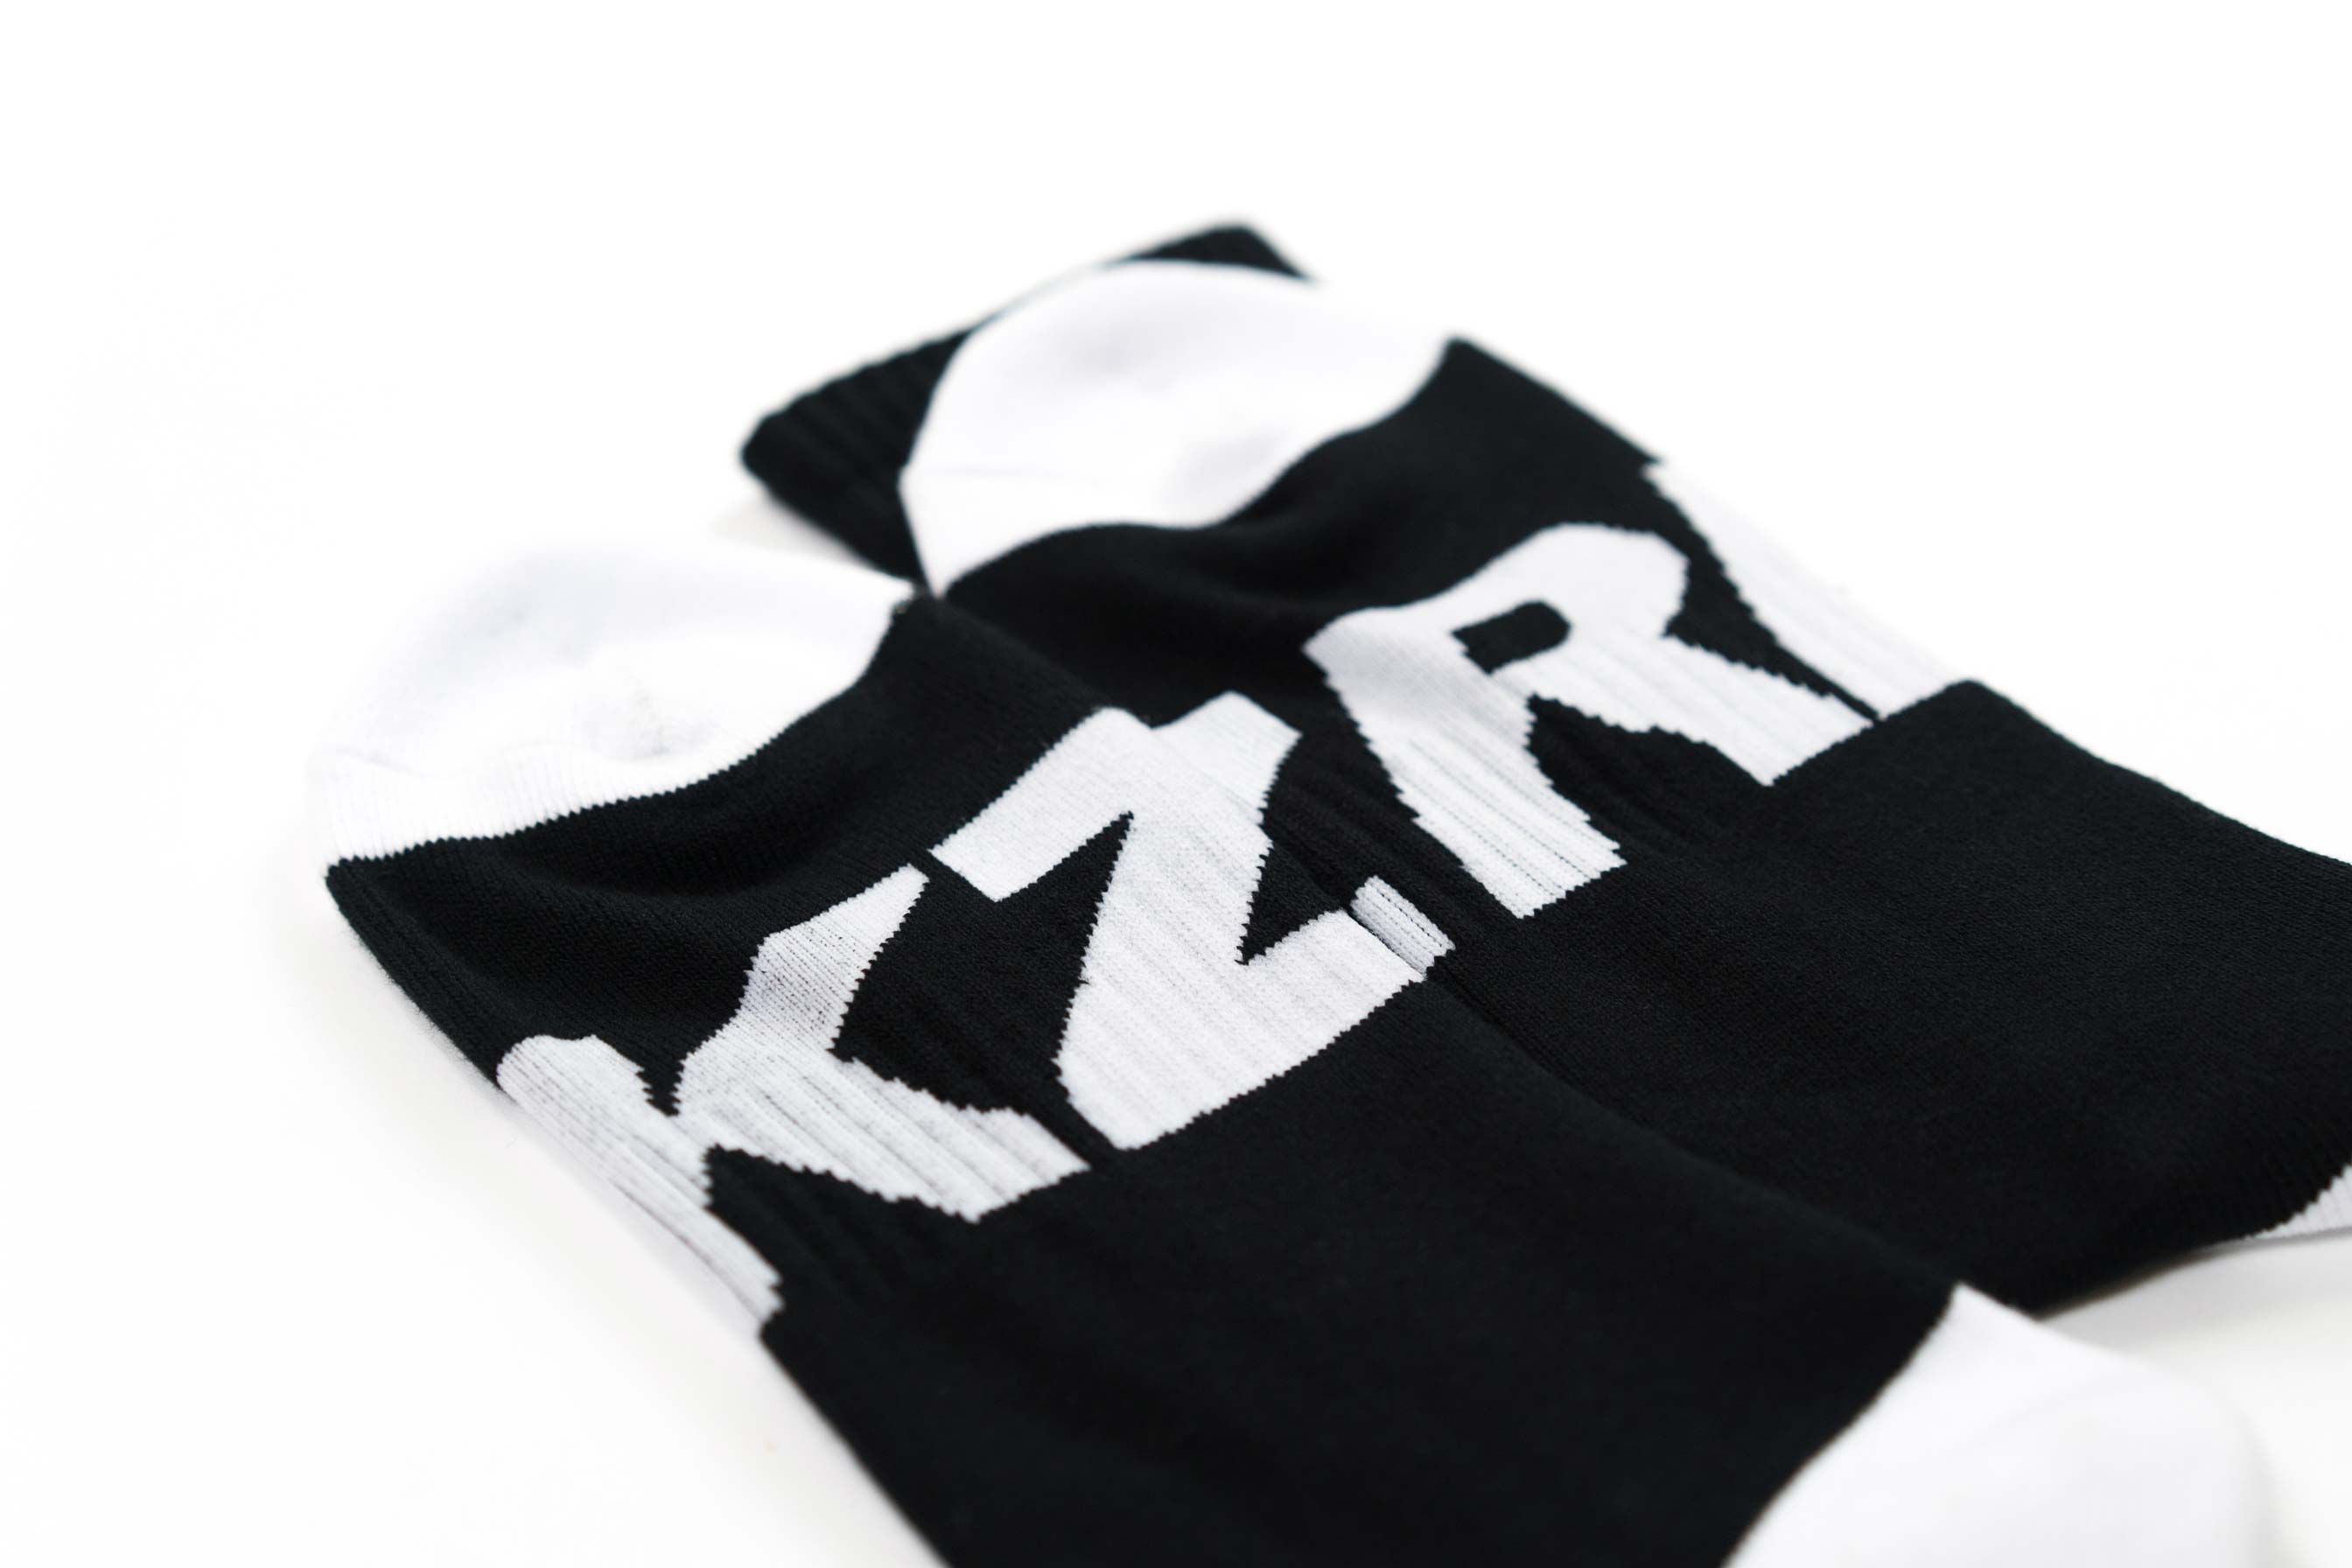 ZRK CREW SOCKS // BLACK & WHITE